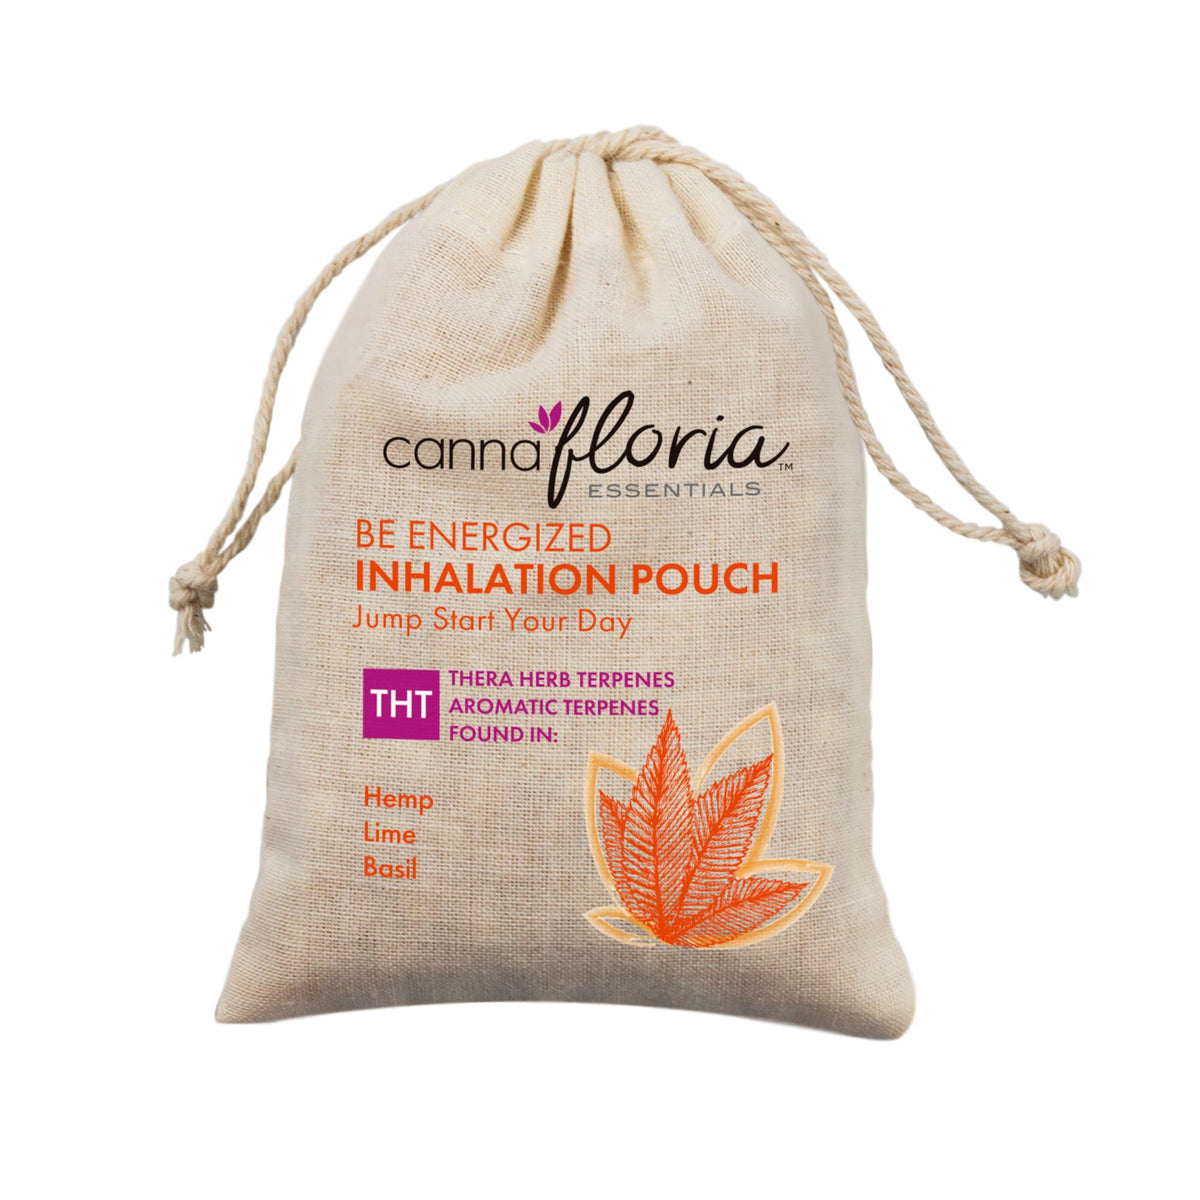 Cannafloria Inhalation Pouch, Be Energized, 2 Pack